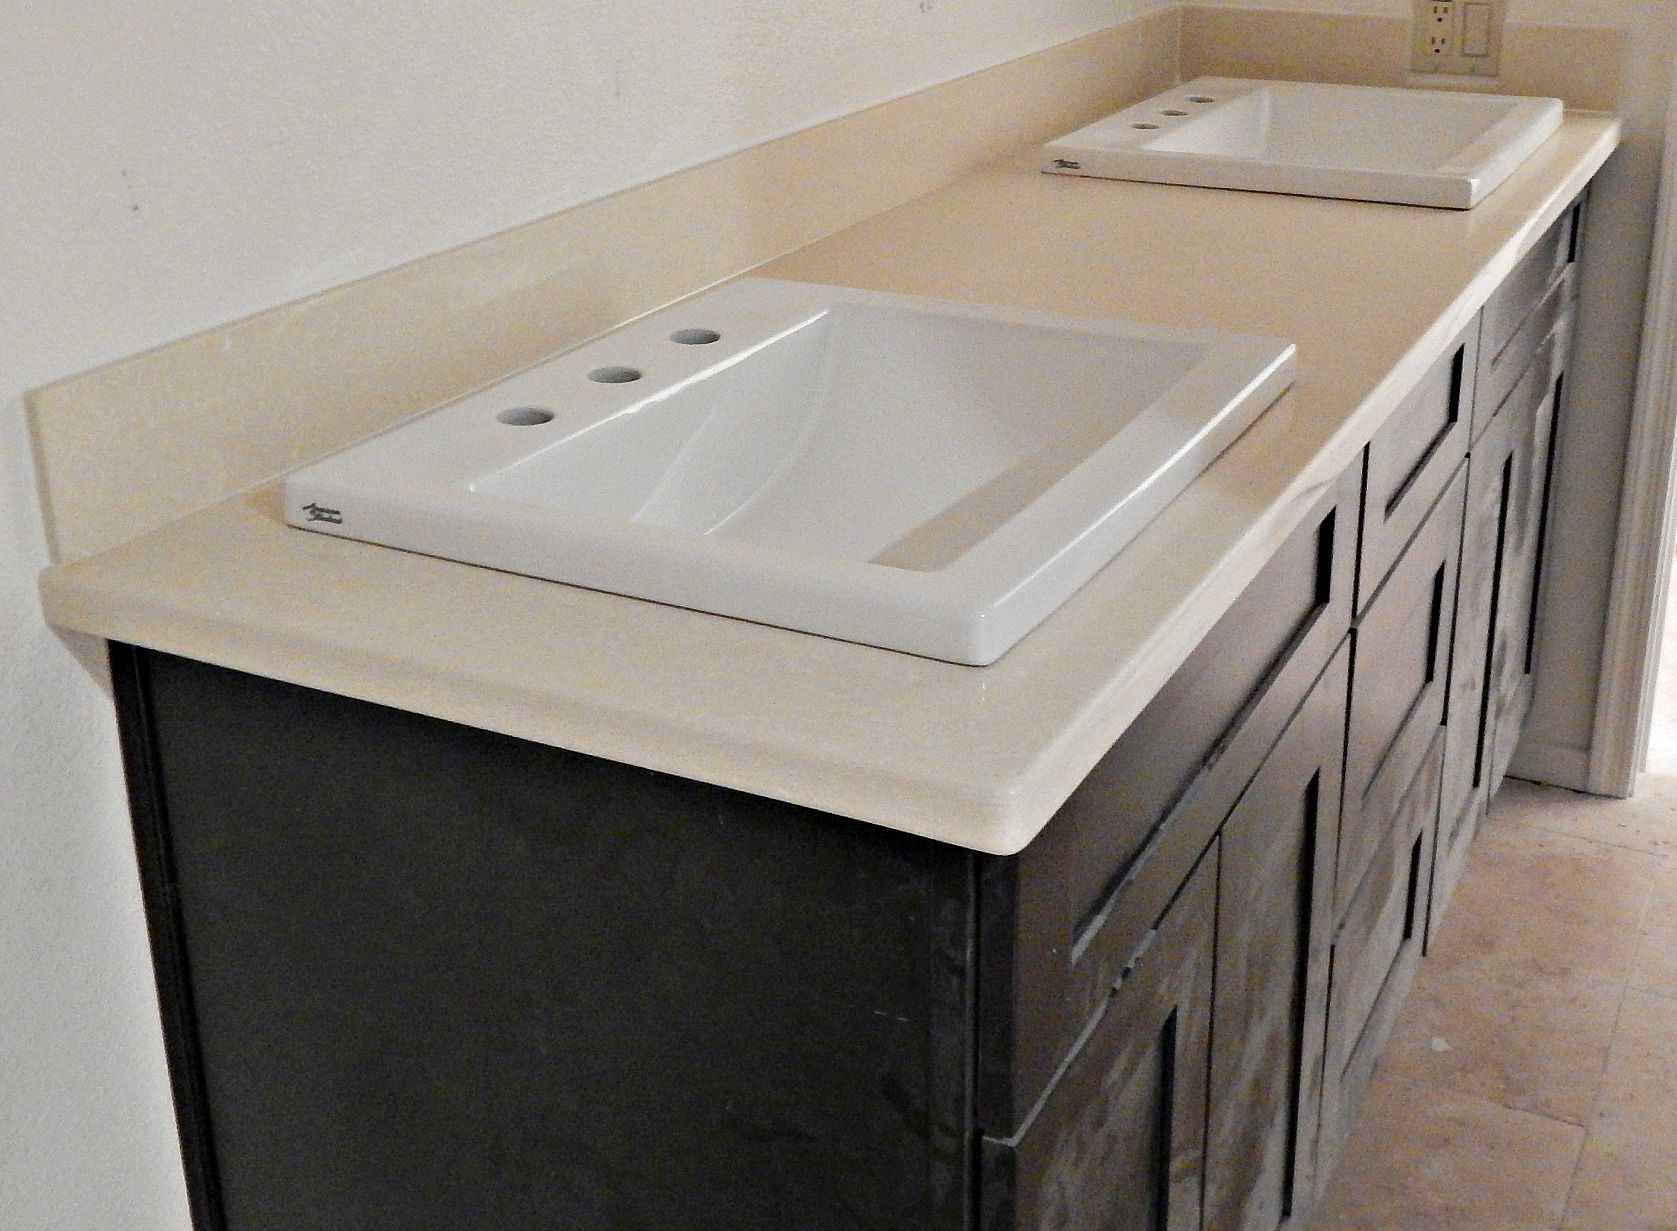 Silestone Haiku Quartz Countertop Remodel With Flat Polish